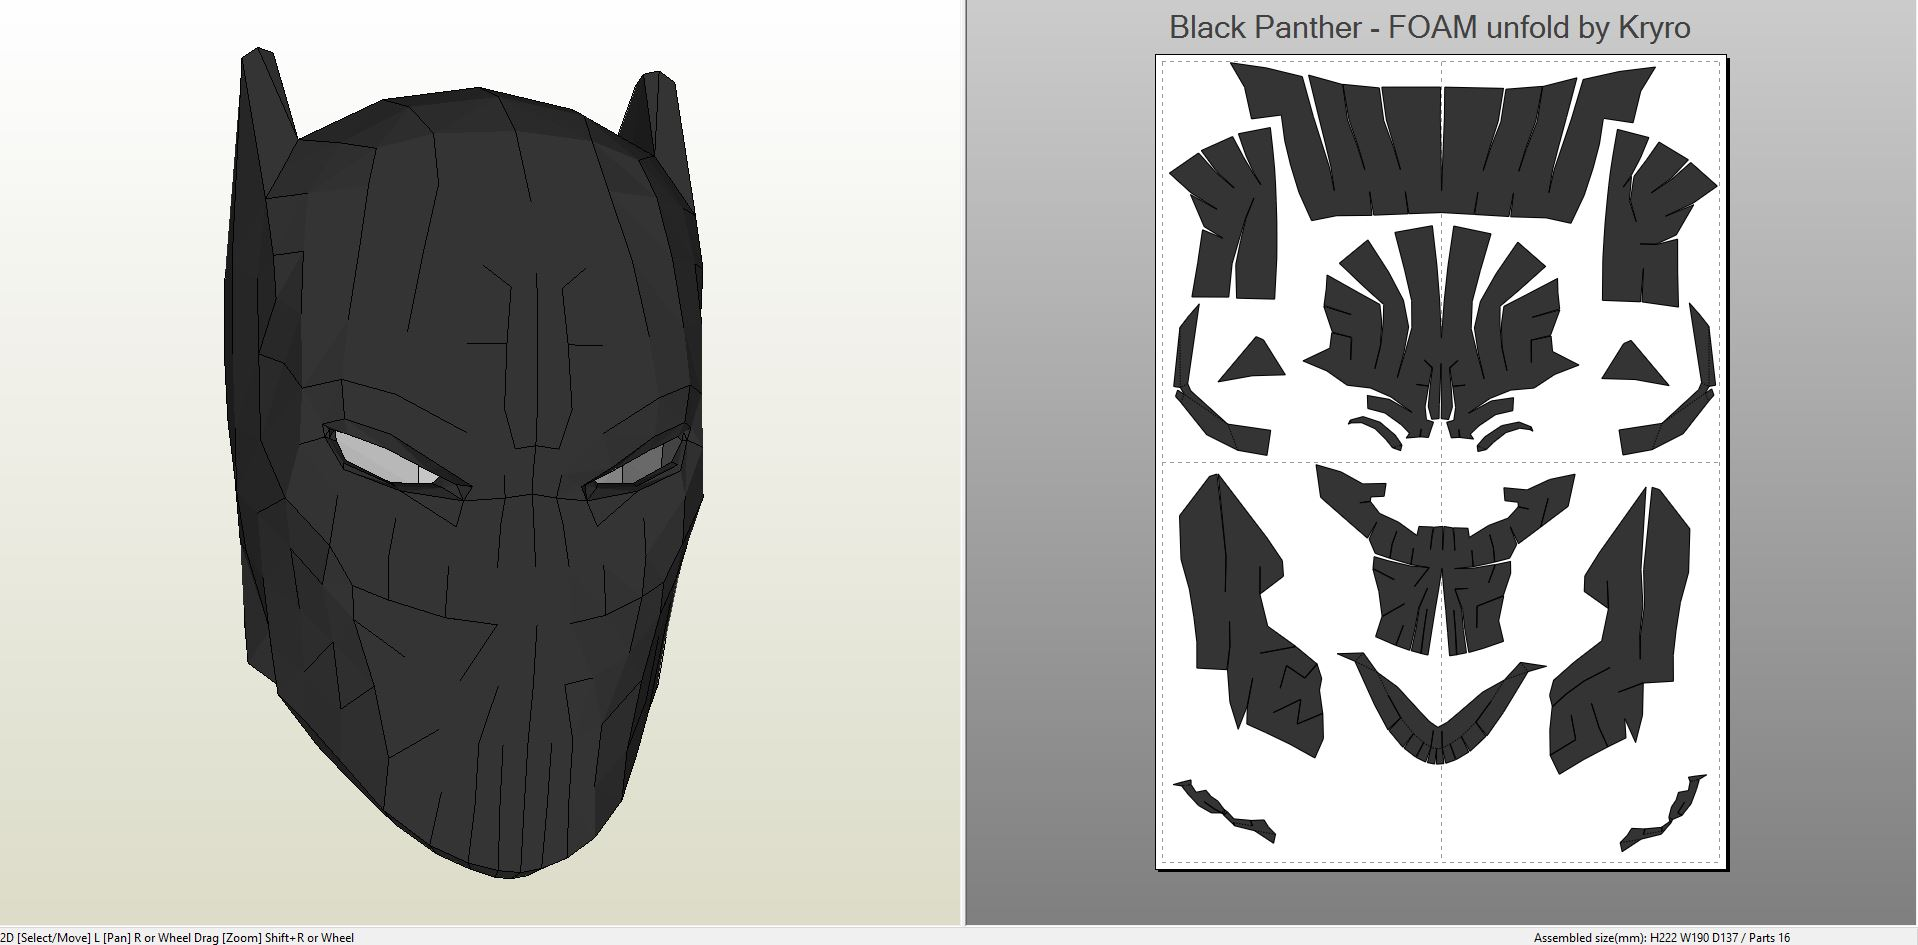 Papercraft Pdo File Template For Black Panther